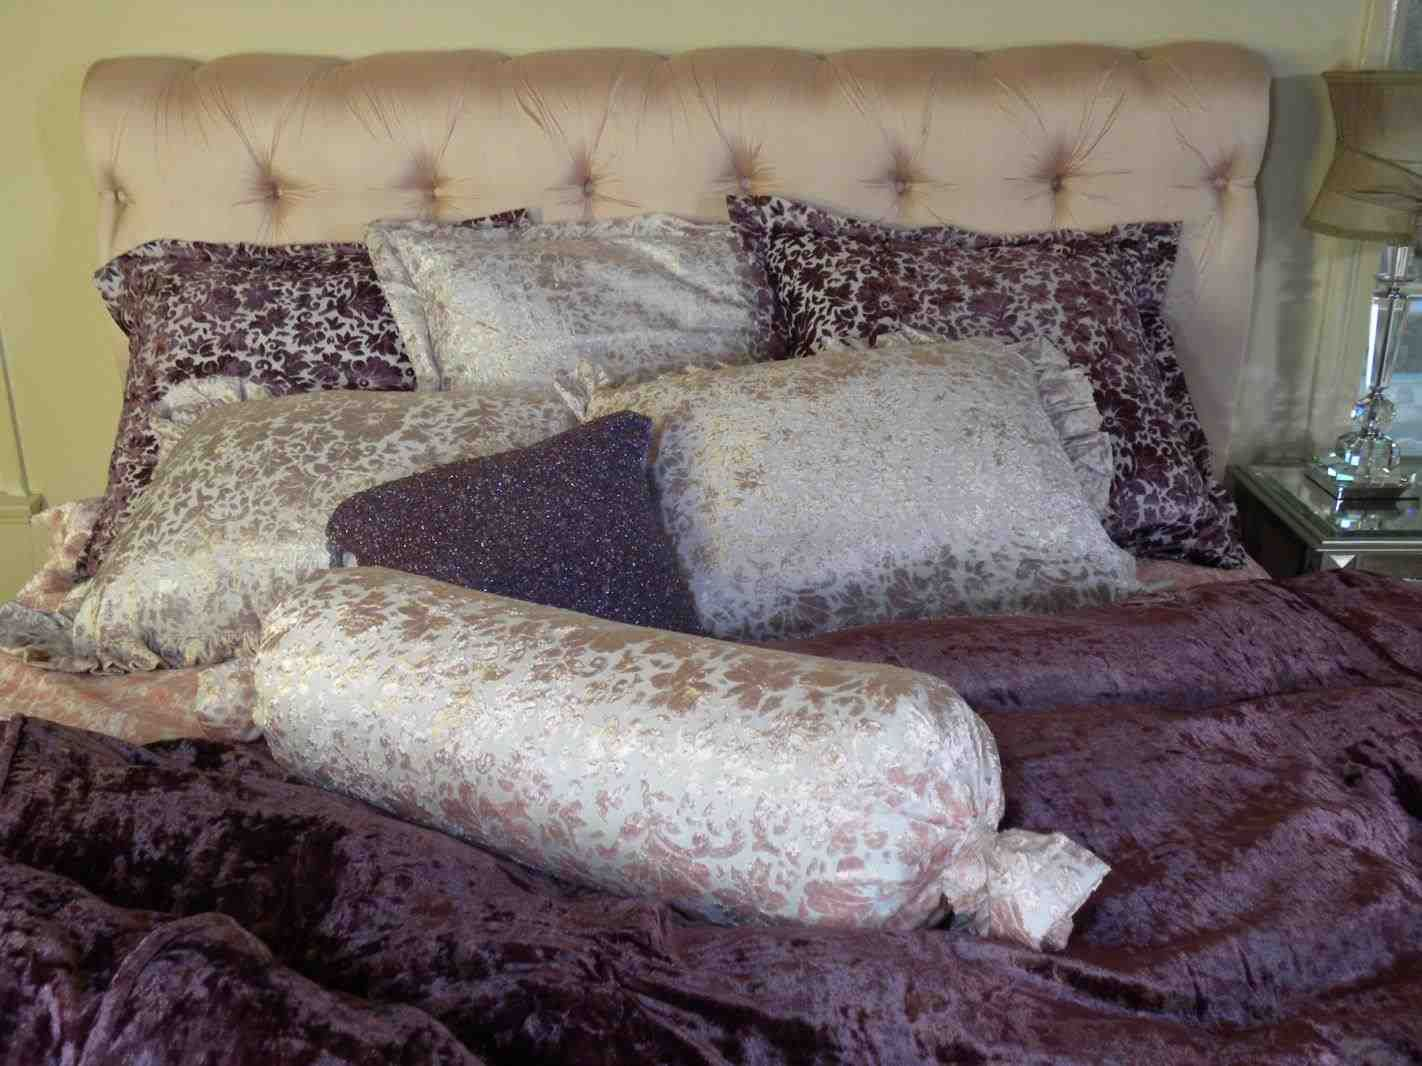 ... Bedding With Bunk Neds And White Paint Walls For Modern Bedroom Idea.  Bed Comforter Set Bedroom. Full Size Of Silver Metal Chrome Polished Bed  Frame ...